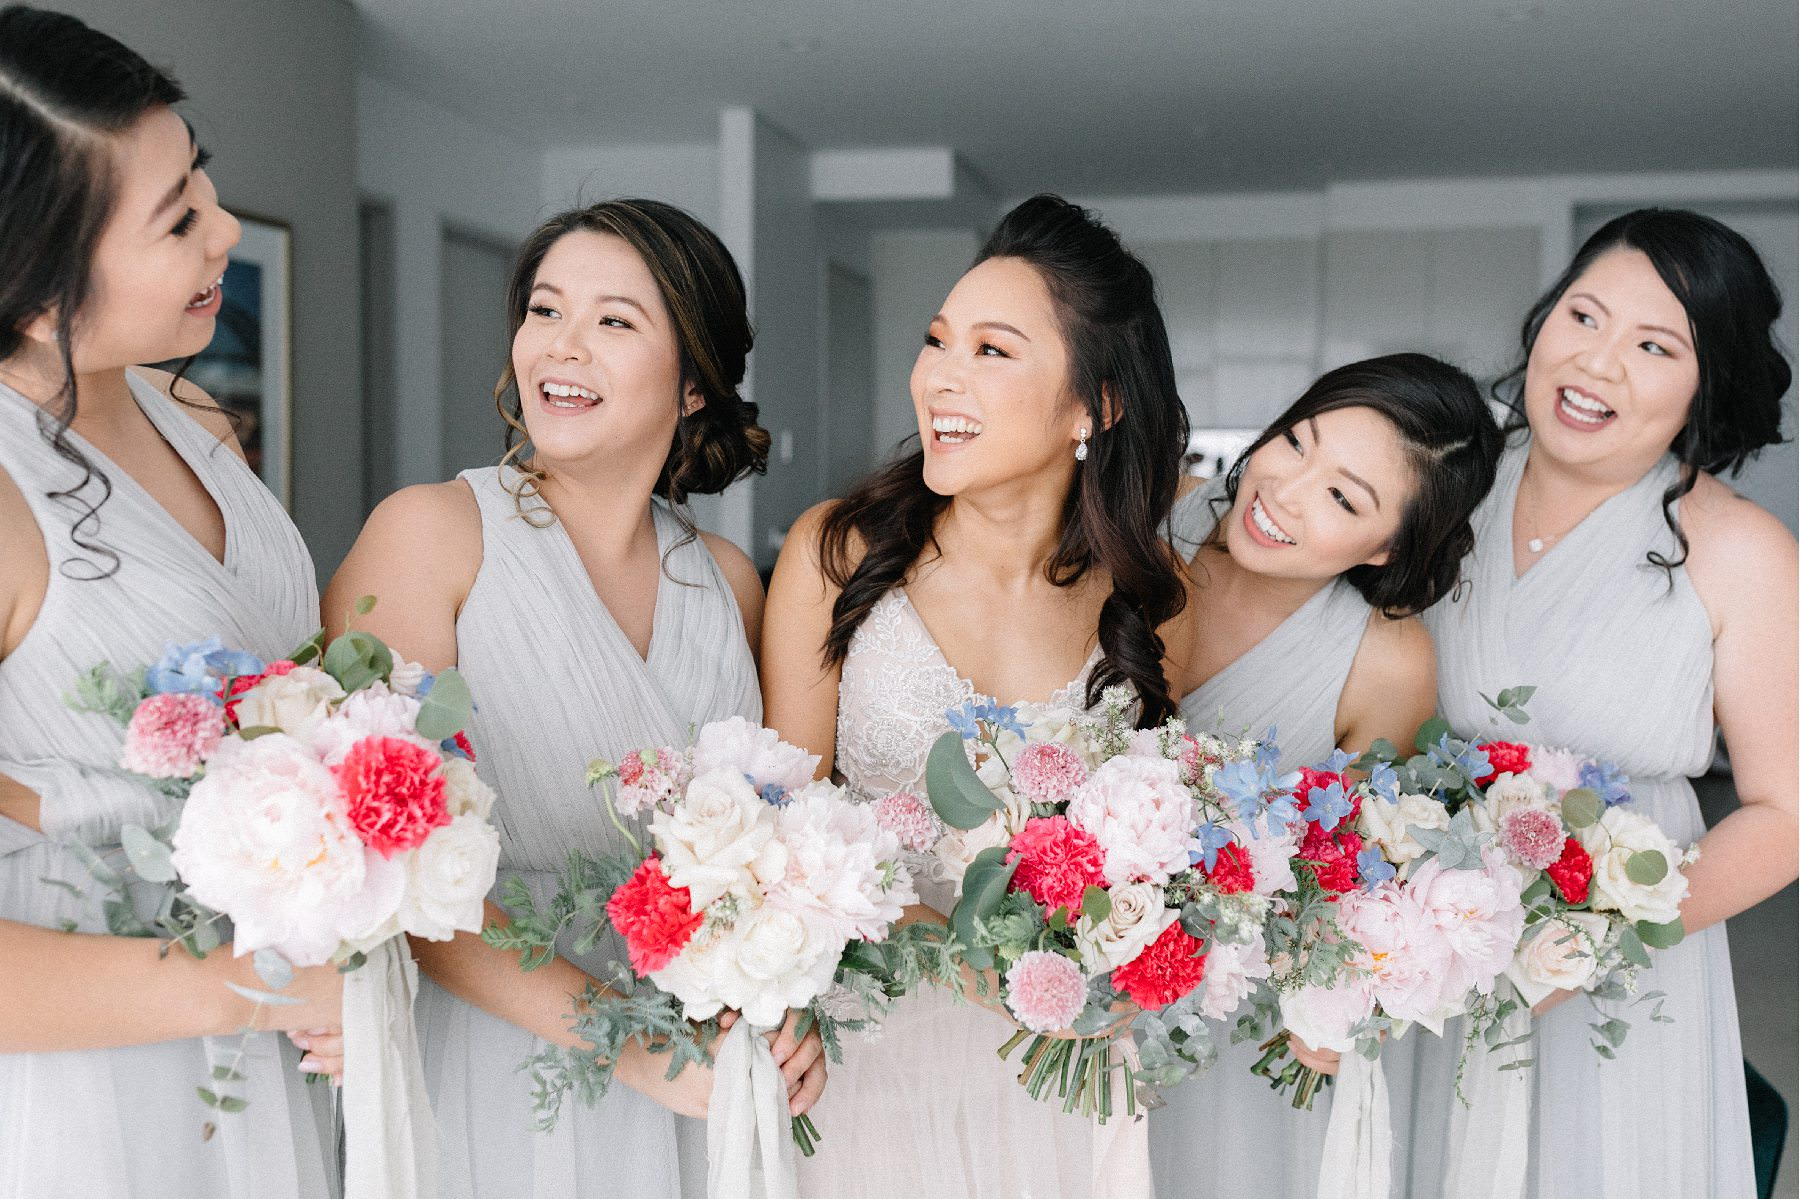 bride and bridesmaids laughing while holding wedding flowers